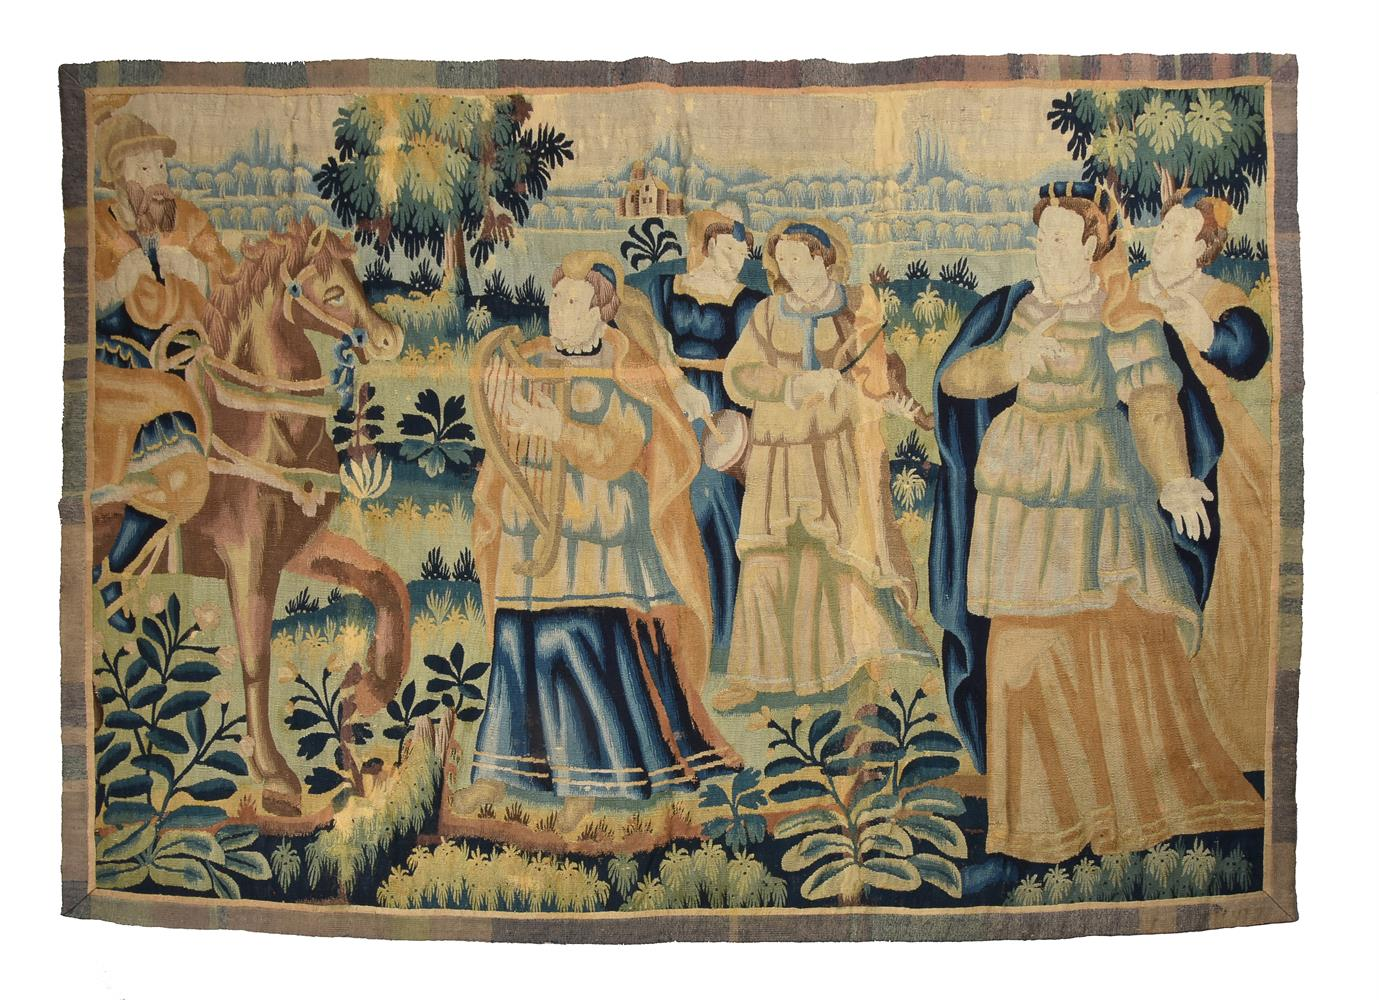 A FLEMISH TAPESTRY FRAGMENT DEPICTING MUSICIANS, LATE 17TH CENTURY